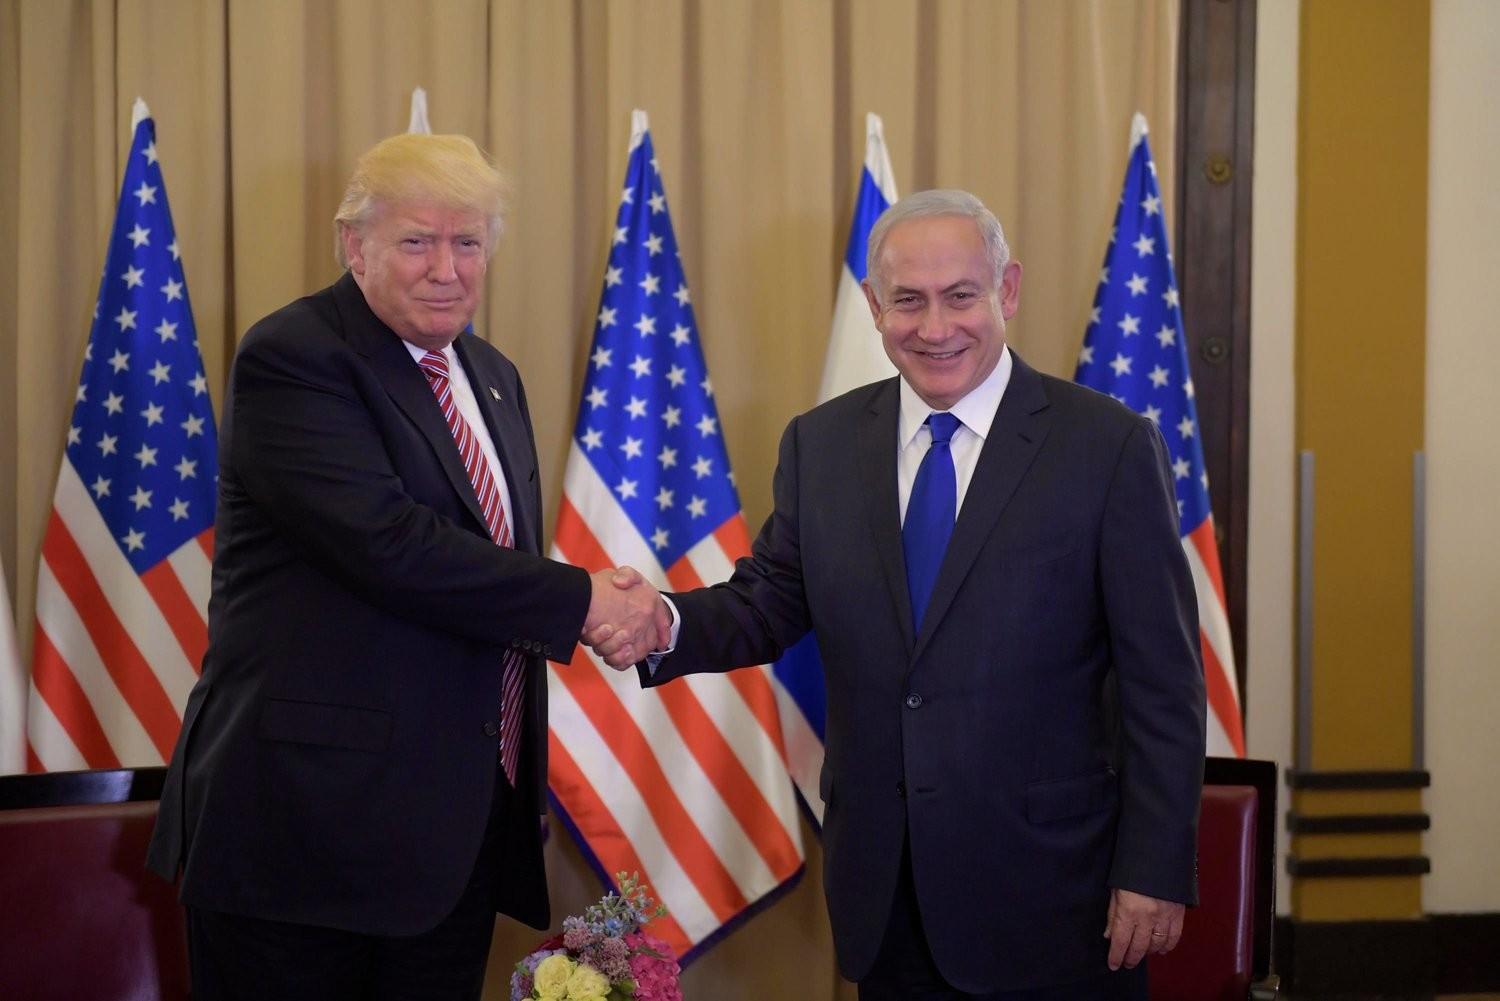 President Trump meets Prime Minister Netanyahu in Jerusalem on May 22.